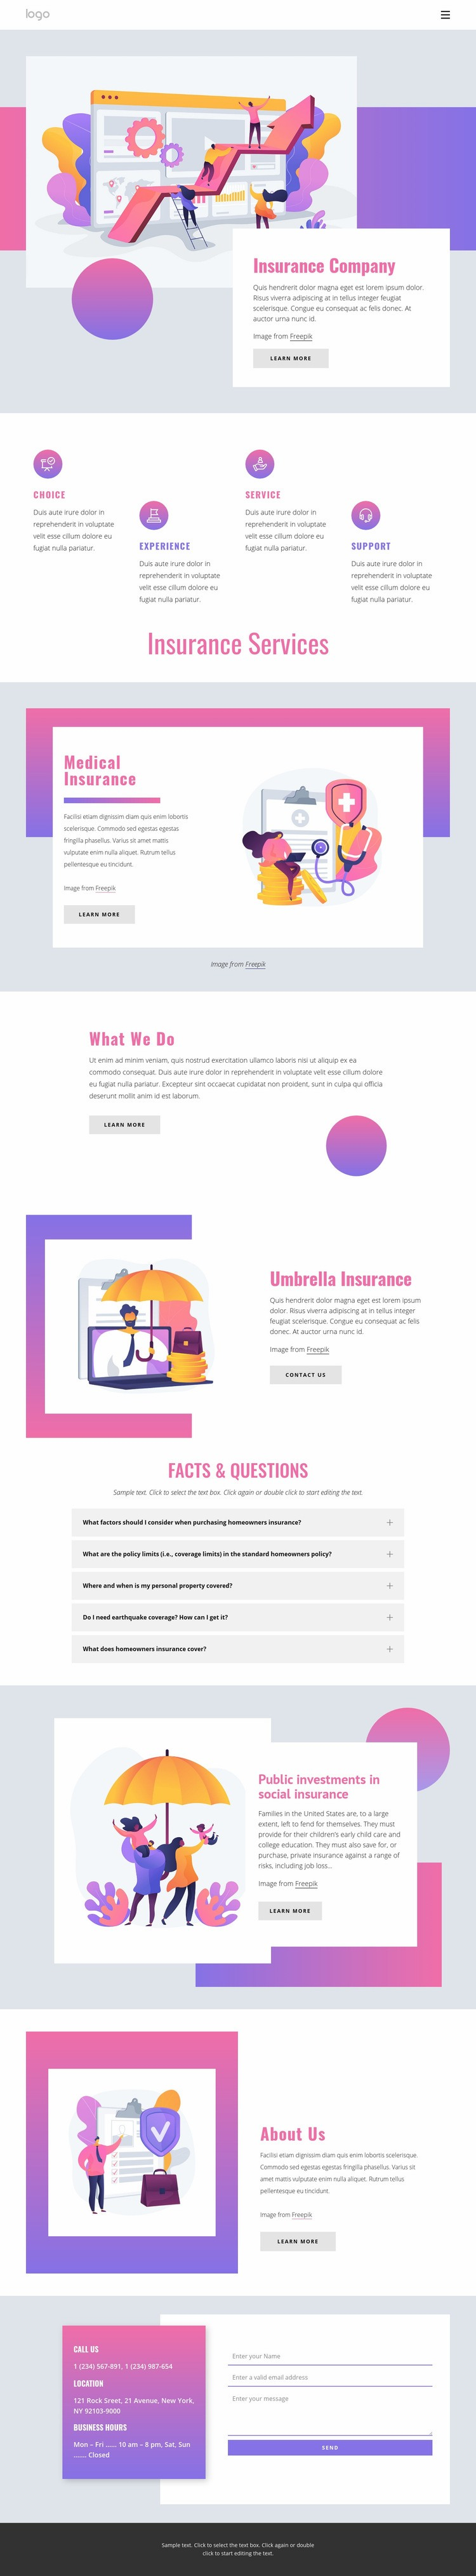 Your consultant for all business risks Web Page Design